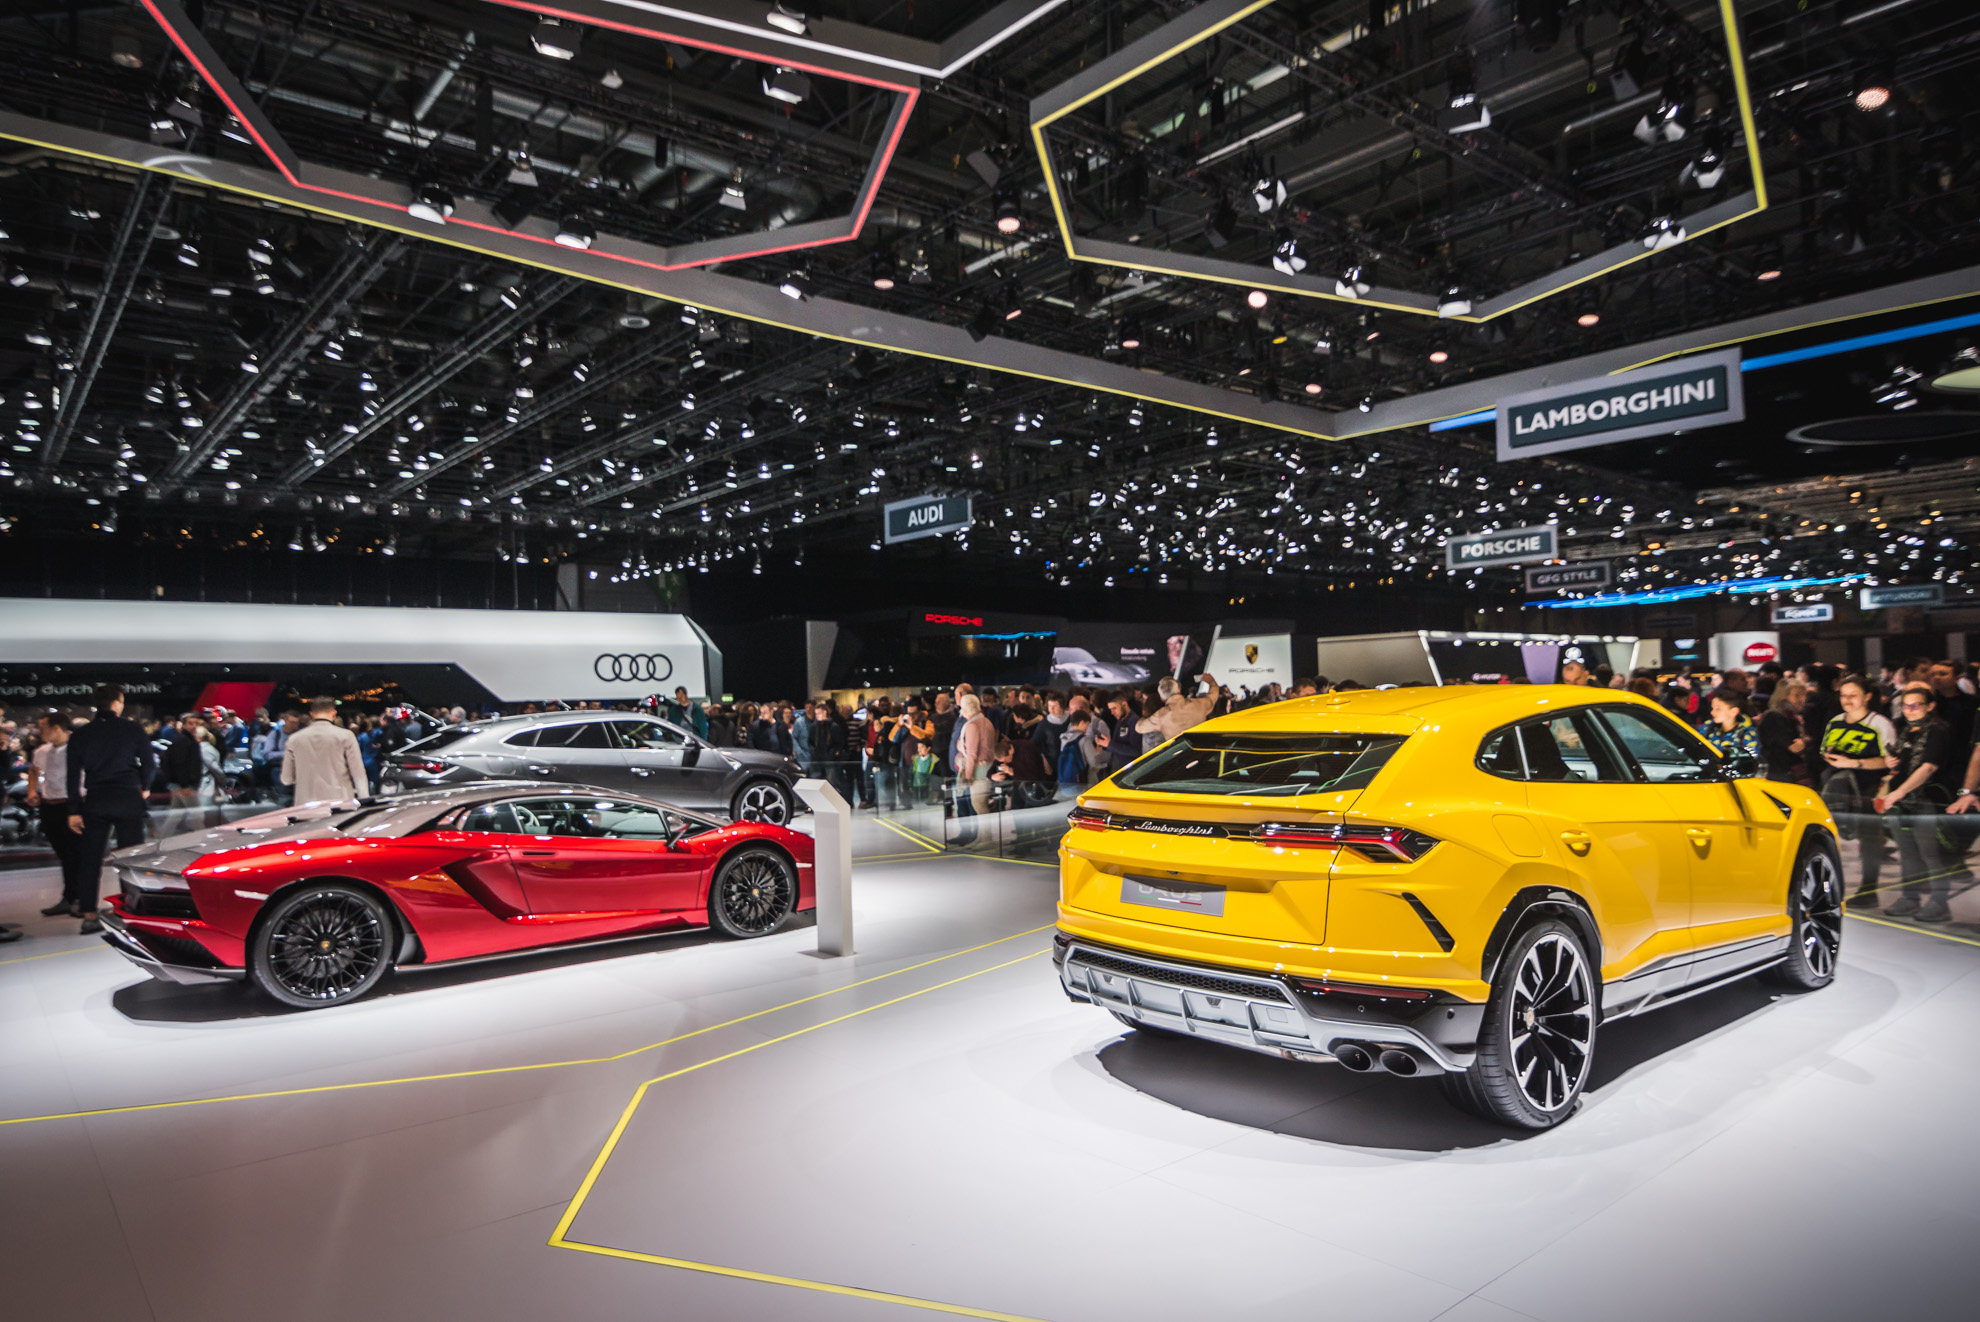 geneva-international-motor-show-igors-sinitsins-6